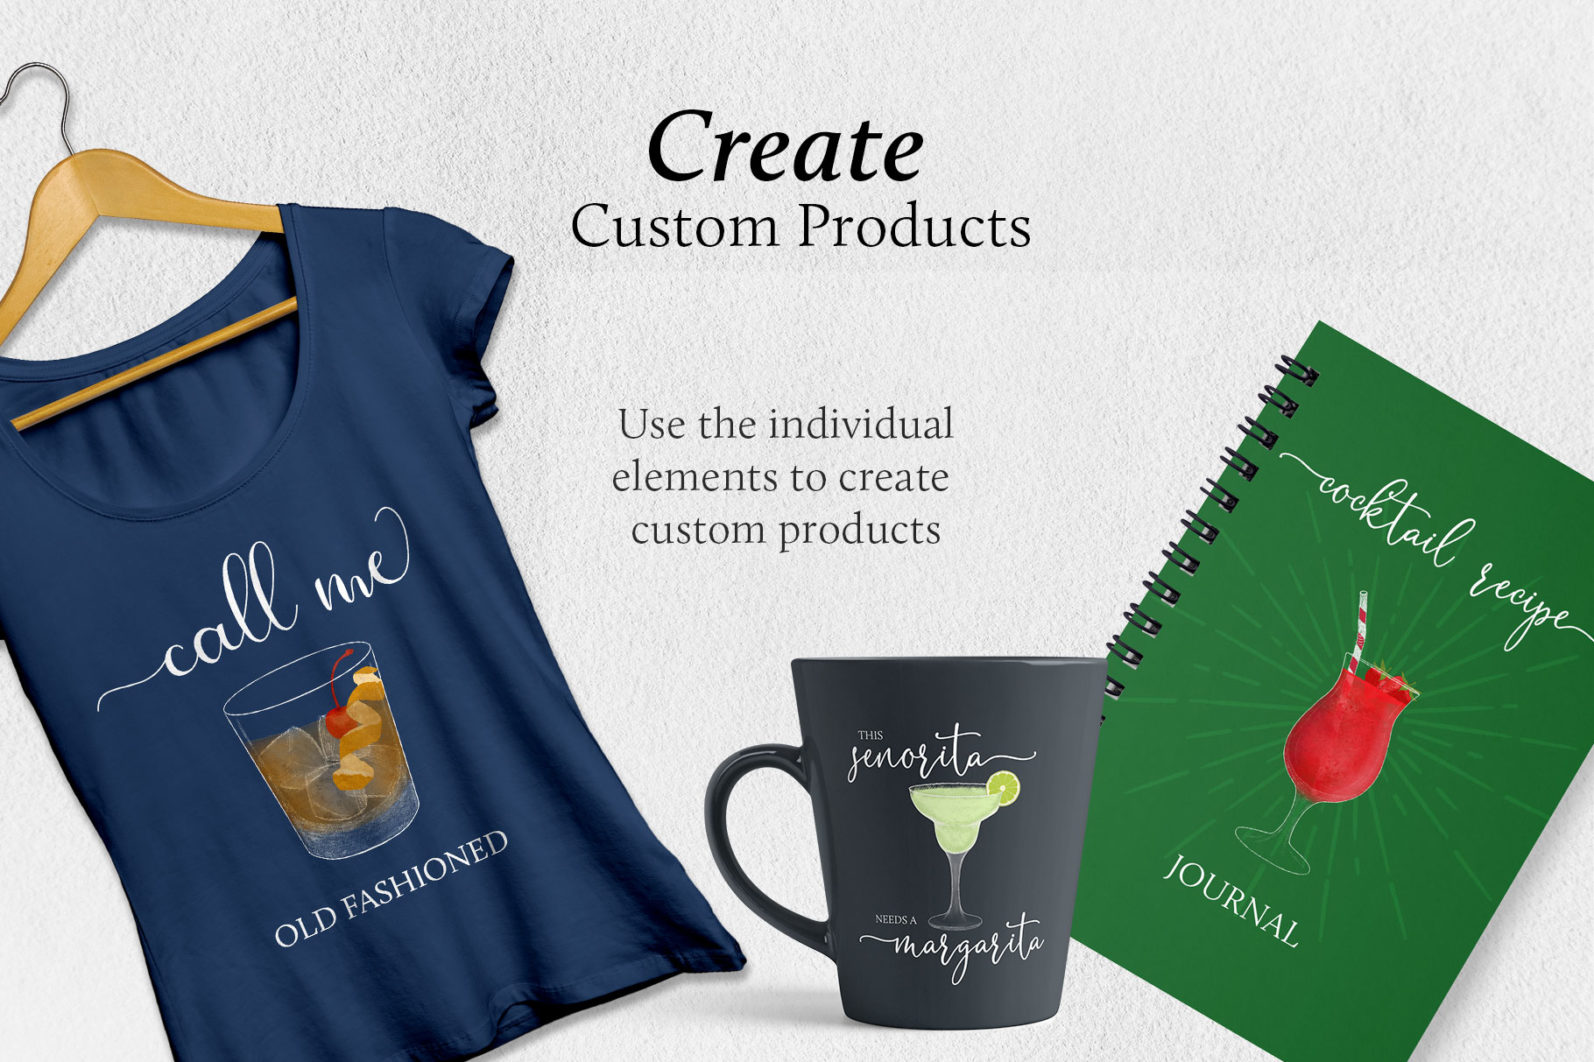 Cocktail Illustrations & Posters - page customize products -